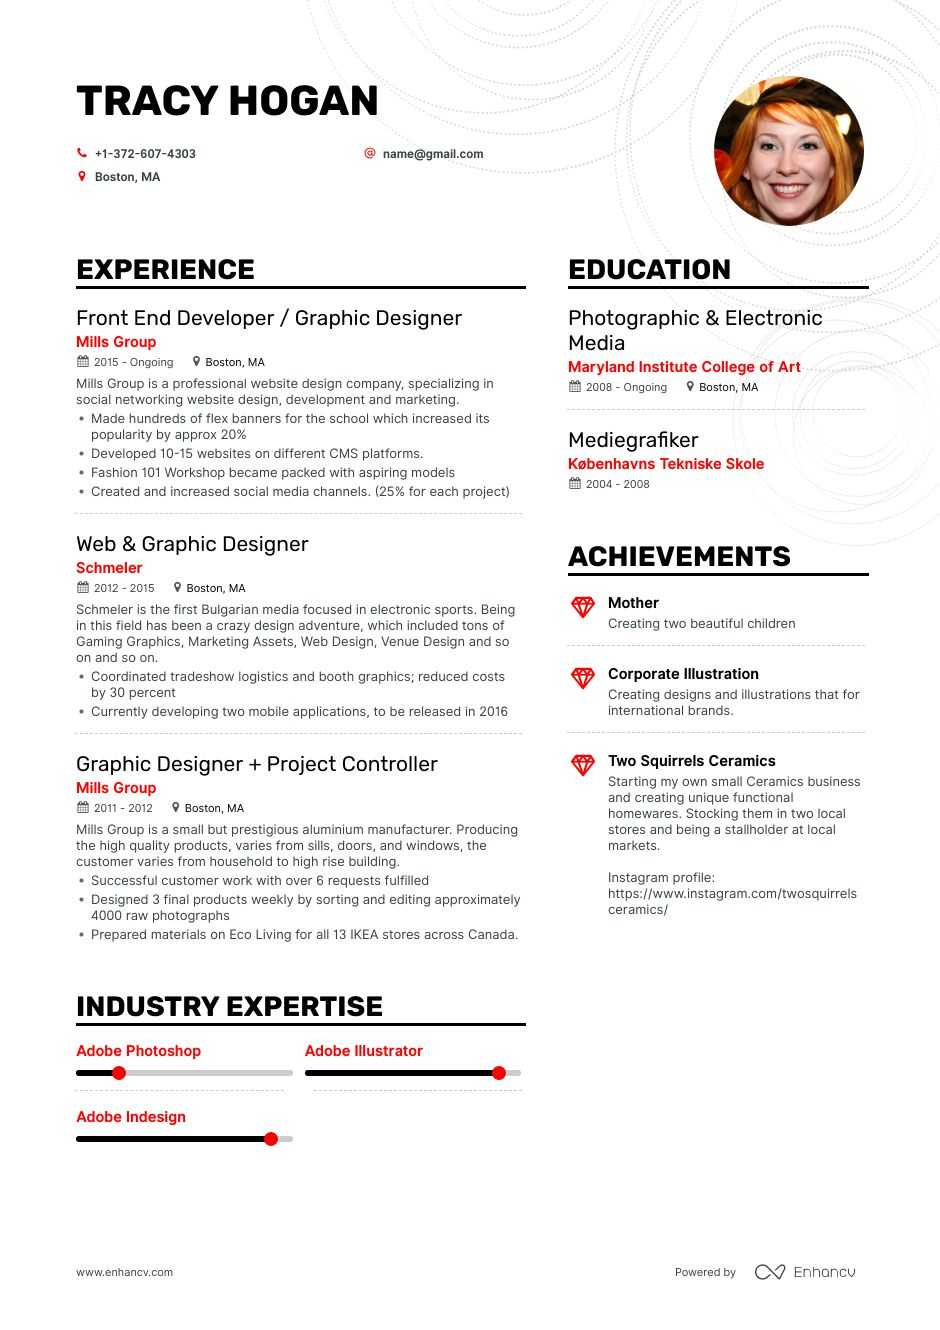 freelance graphic designer resume examples pro tips featured enhancv catchy objective for Resume Graphic Designer Resume